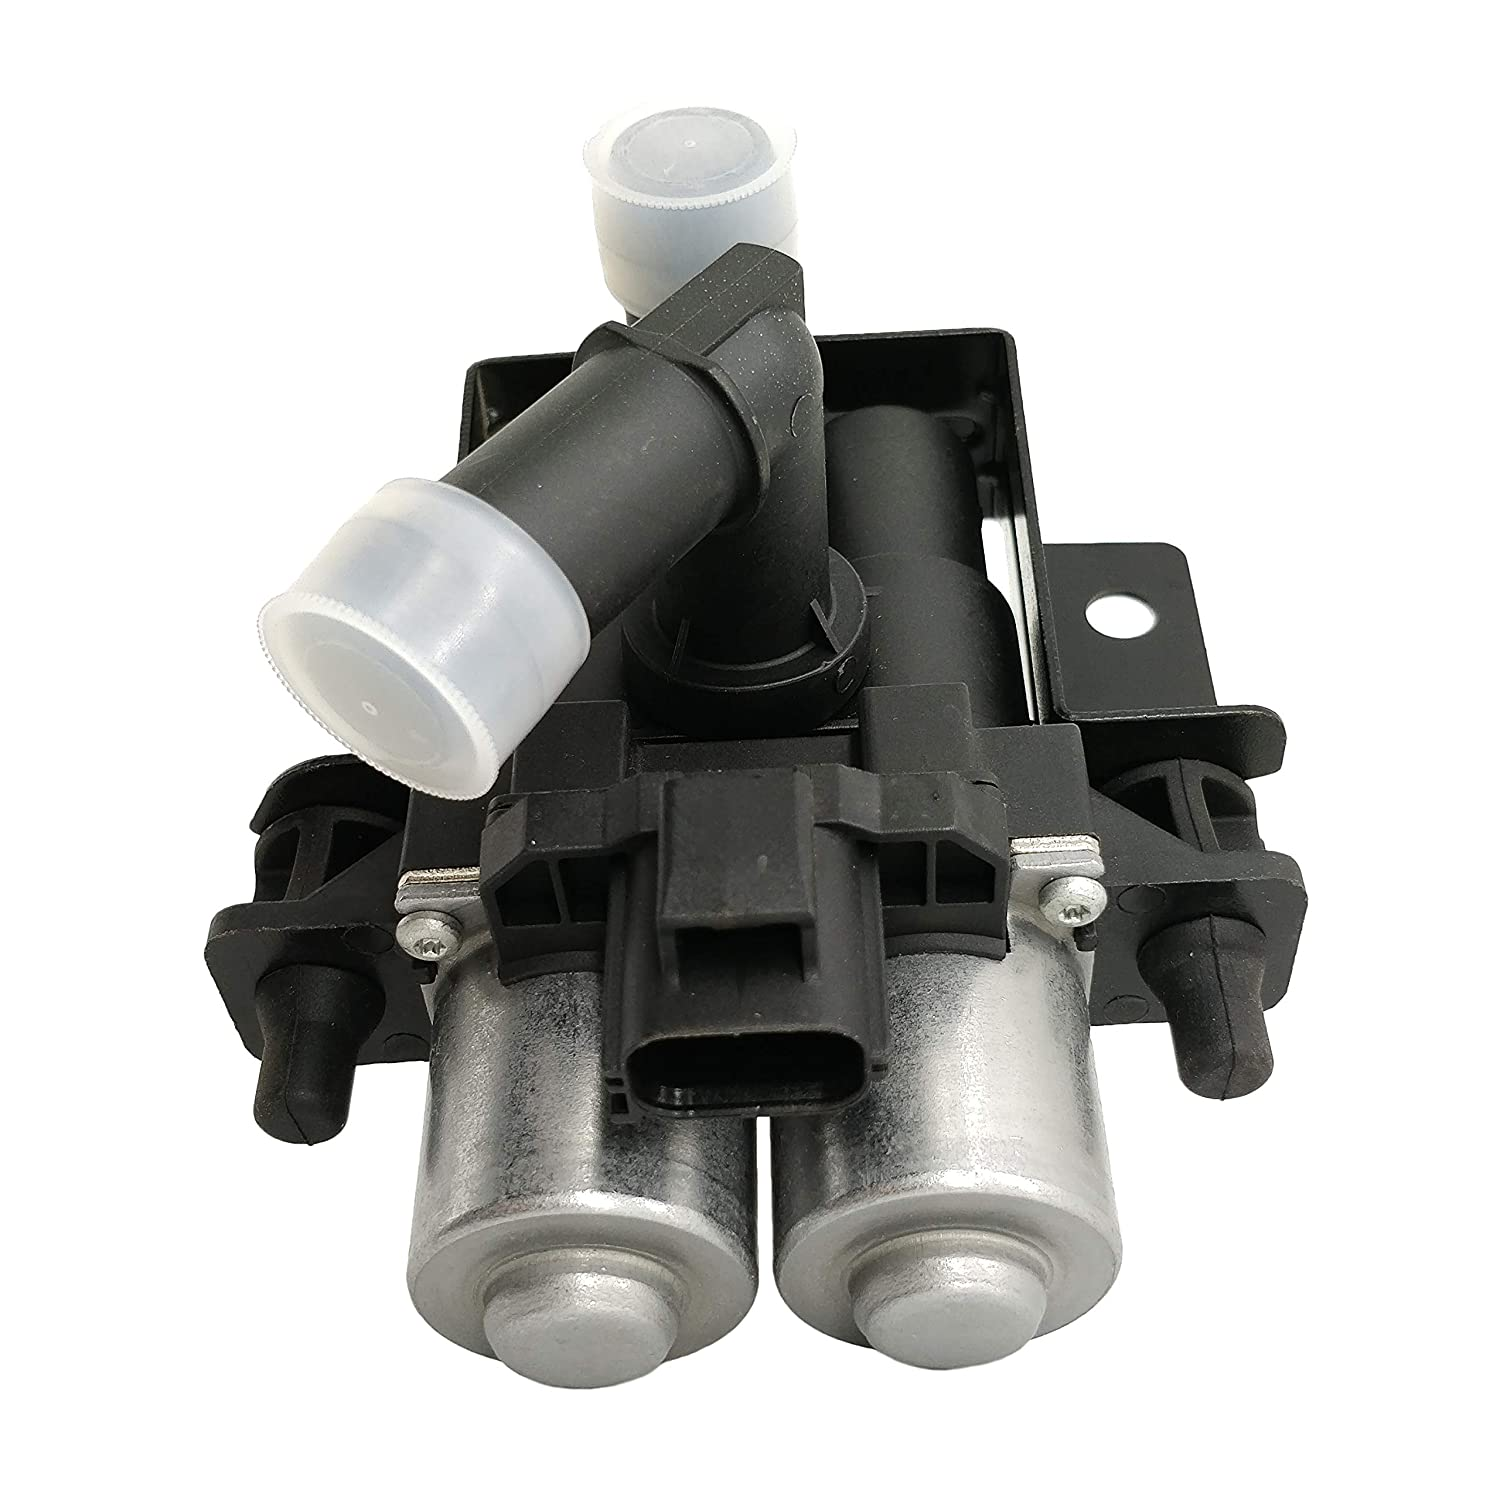 Heater Control Water Valve for 00-02 Jaguar S-Type Lincoln LS Ford Thunderbird Okay Motor Products Inc. XR822975